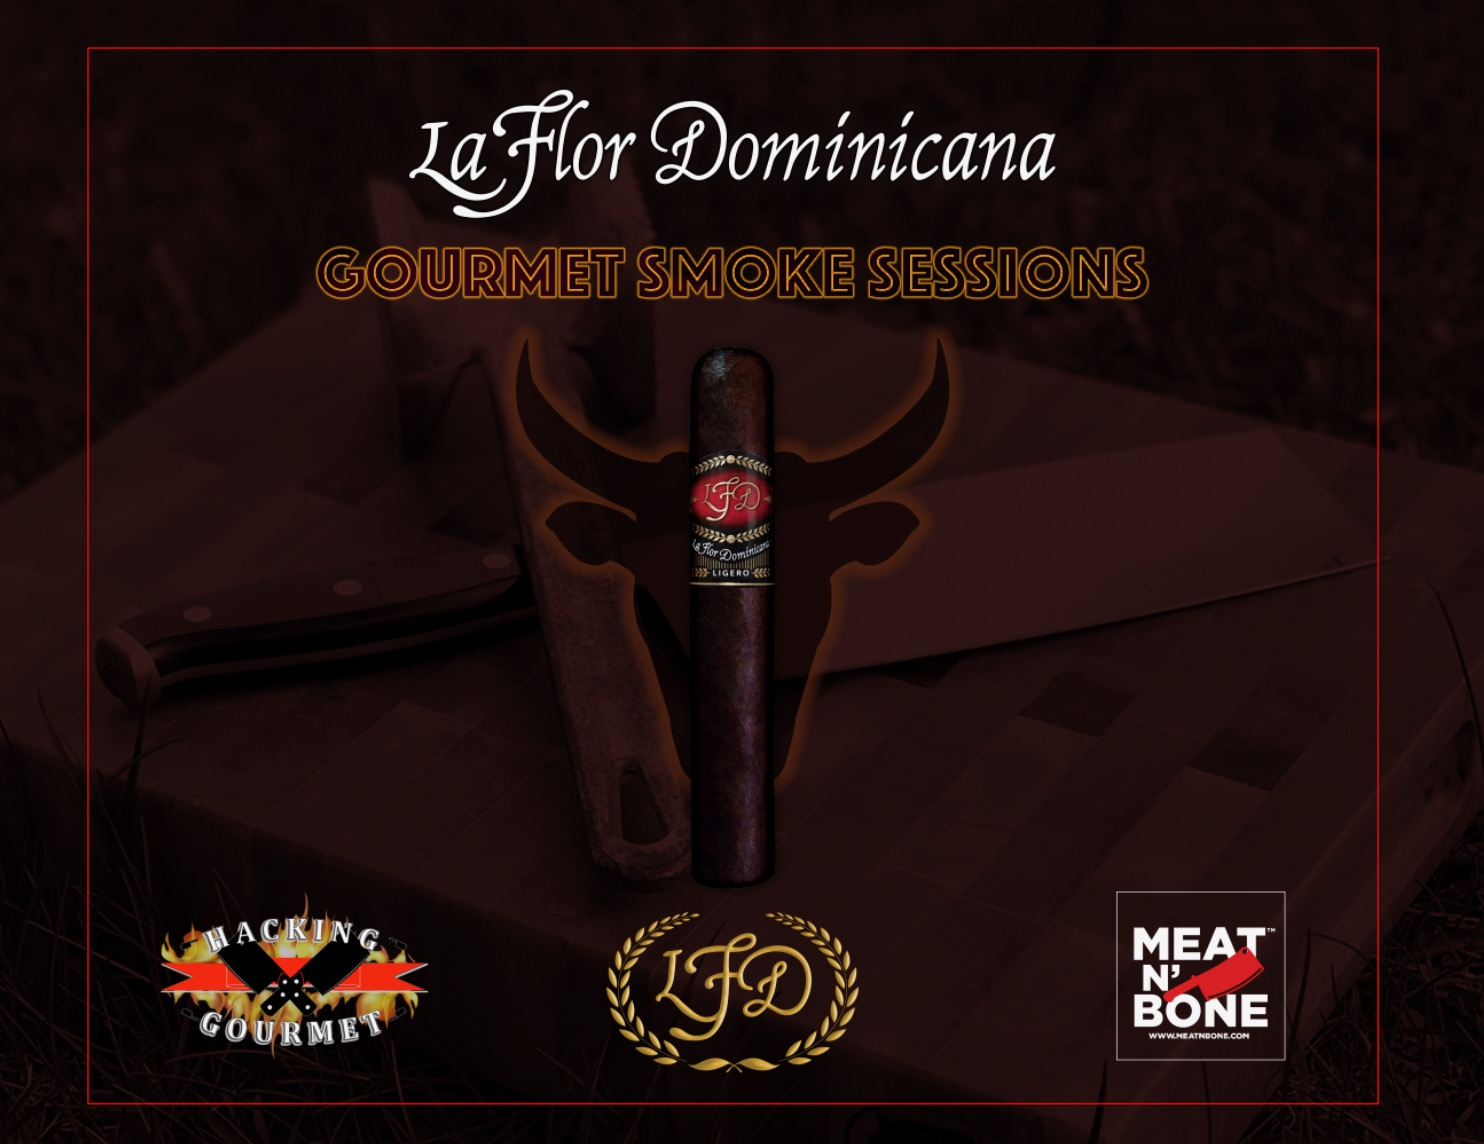 The Blog: La Flor Dominicana Teams With Hacking Gourmet for Gourmet Smoke Session Series